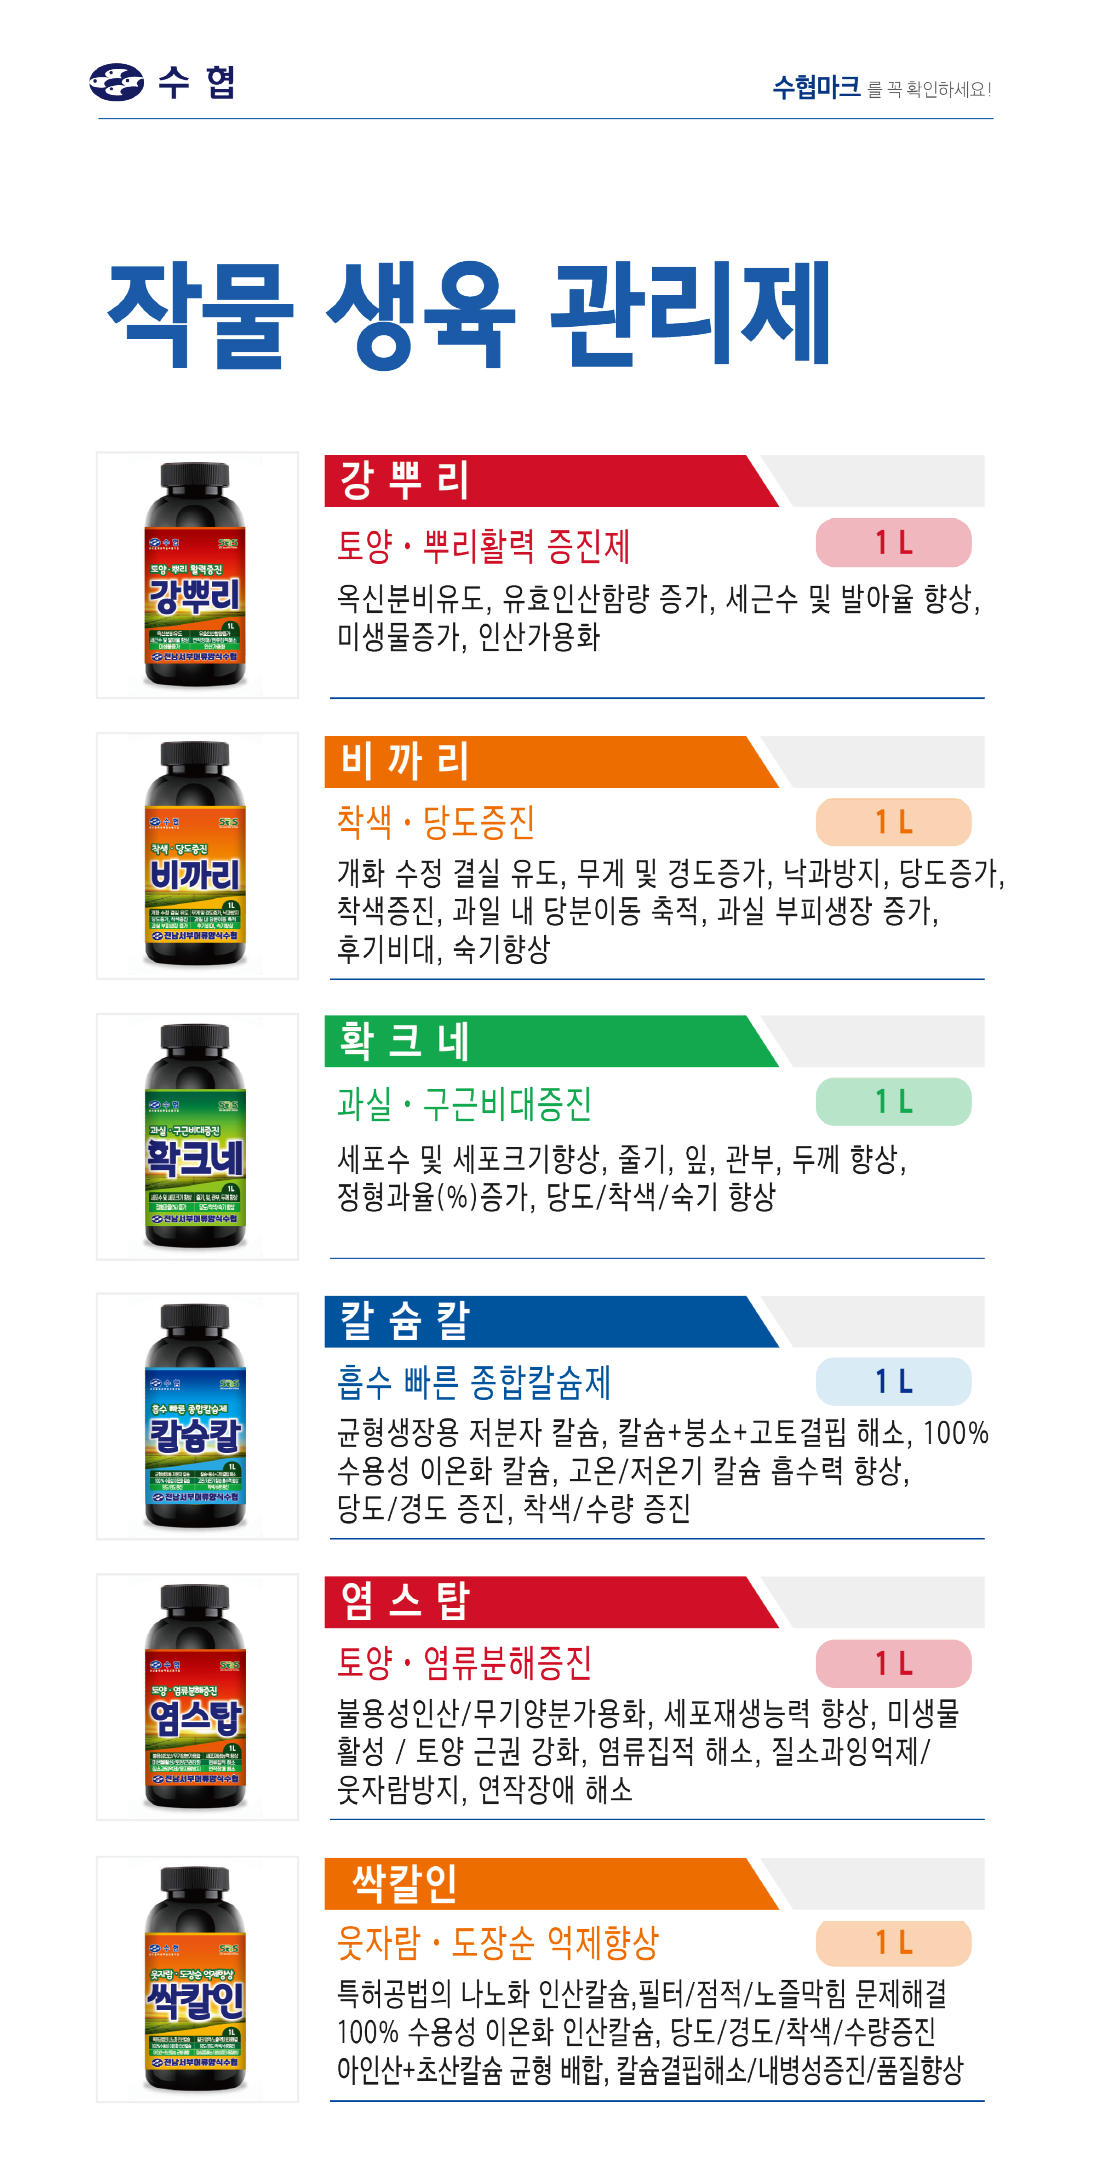 http://suhyup2019.handpr.kr/bs/se2/imgup/1589964492det1_s.png